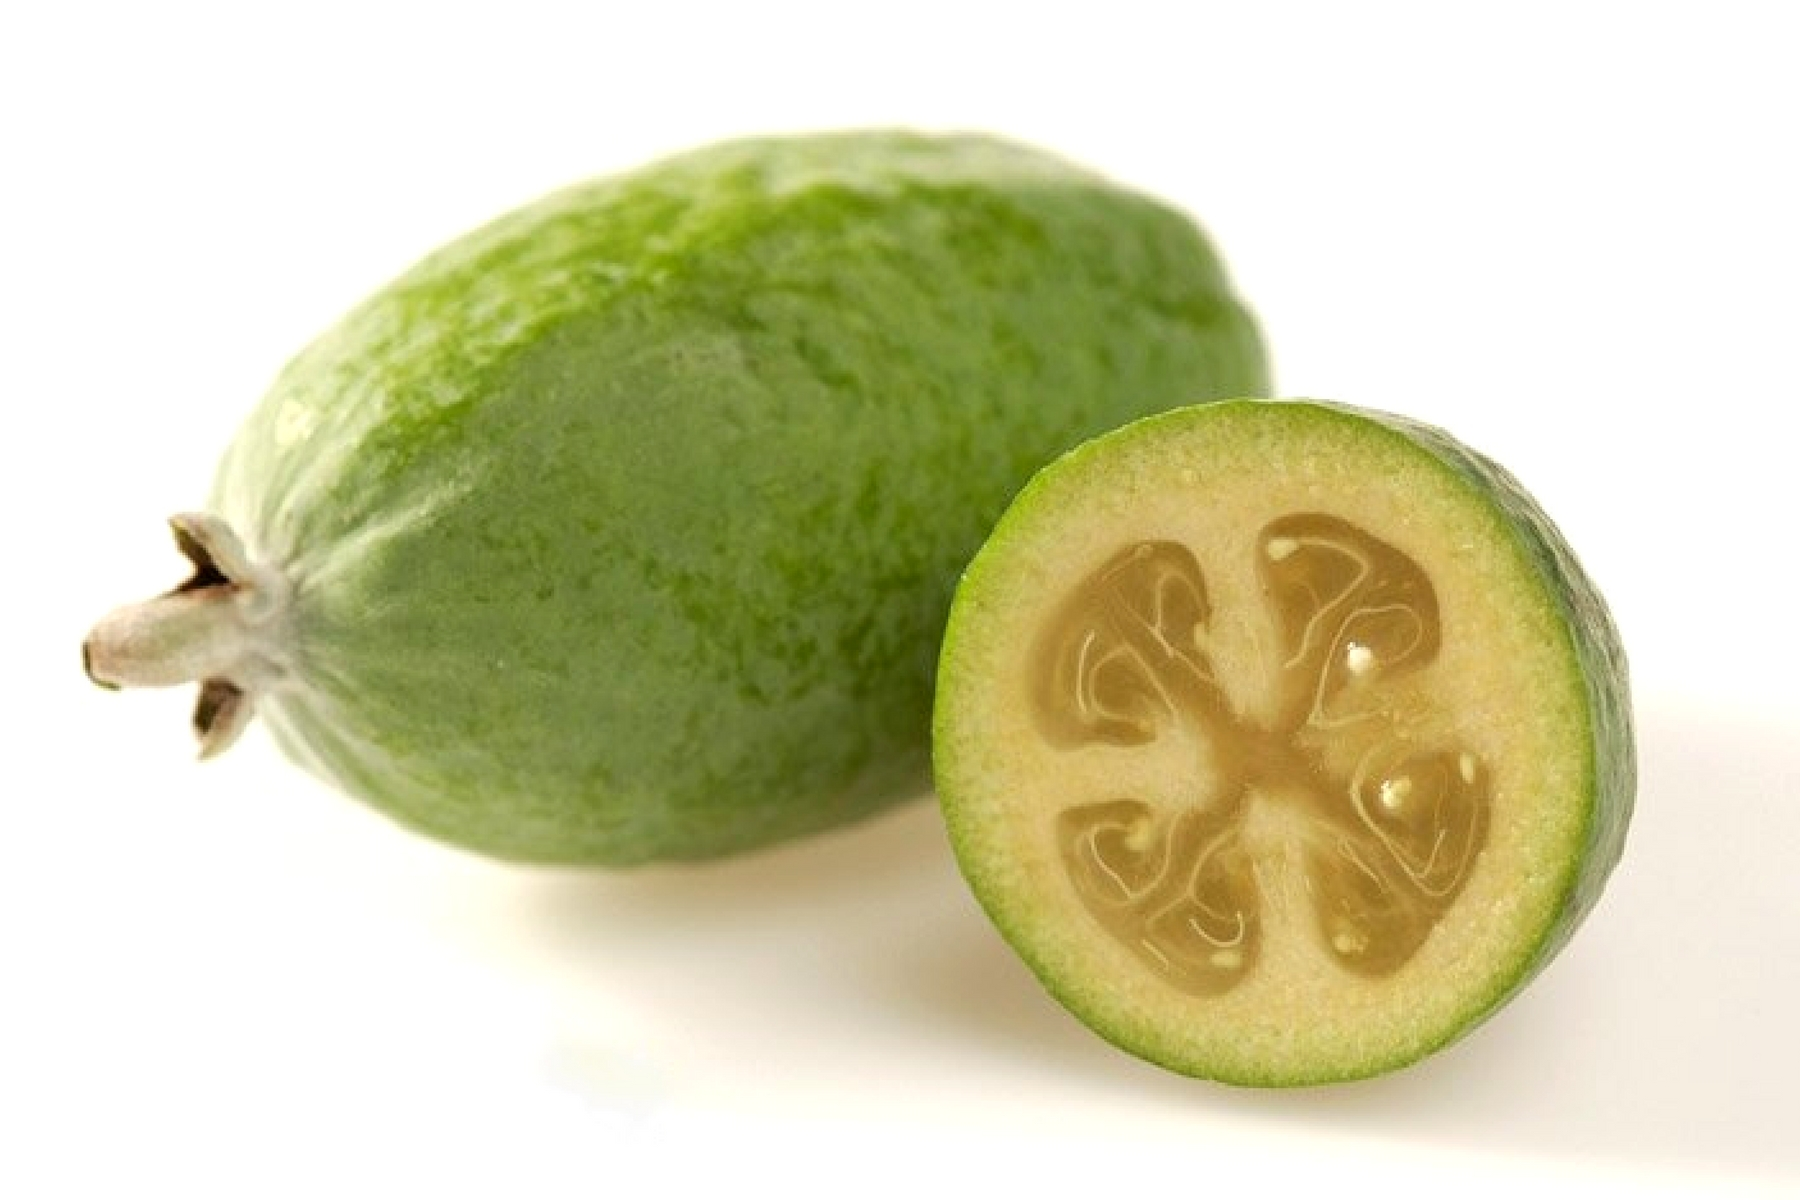 16 REMARKABLE BENEFITS OF PINEAPPLE GUAVA (FEIJOA)